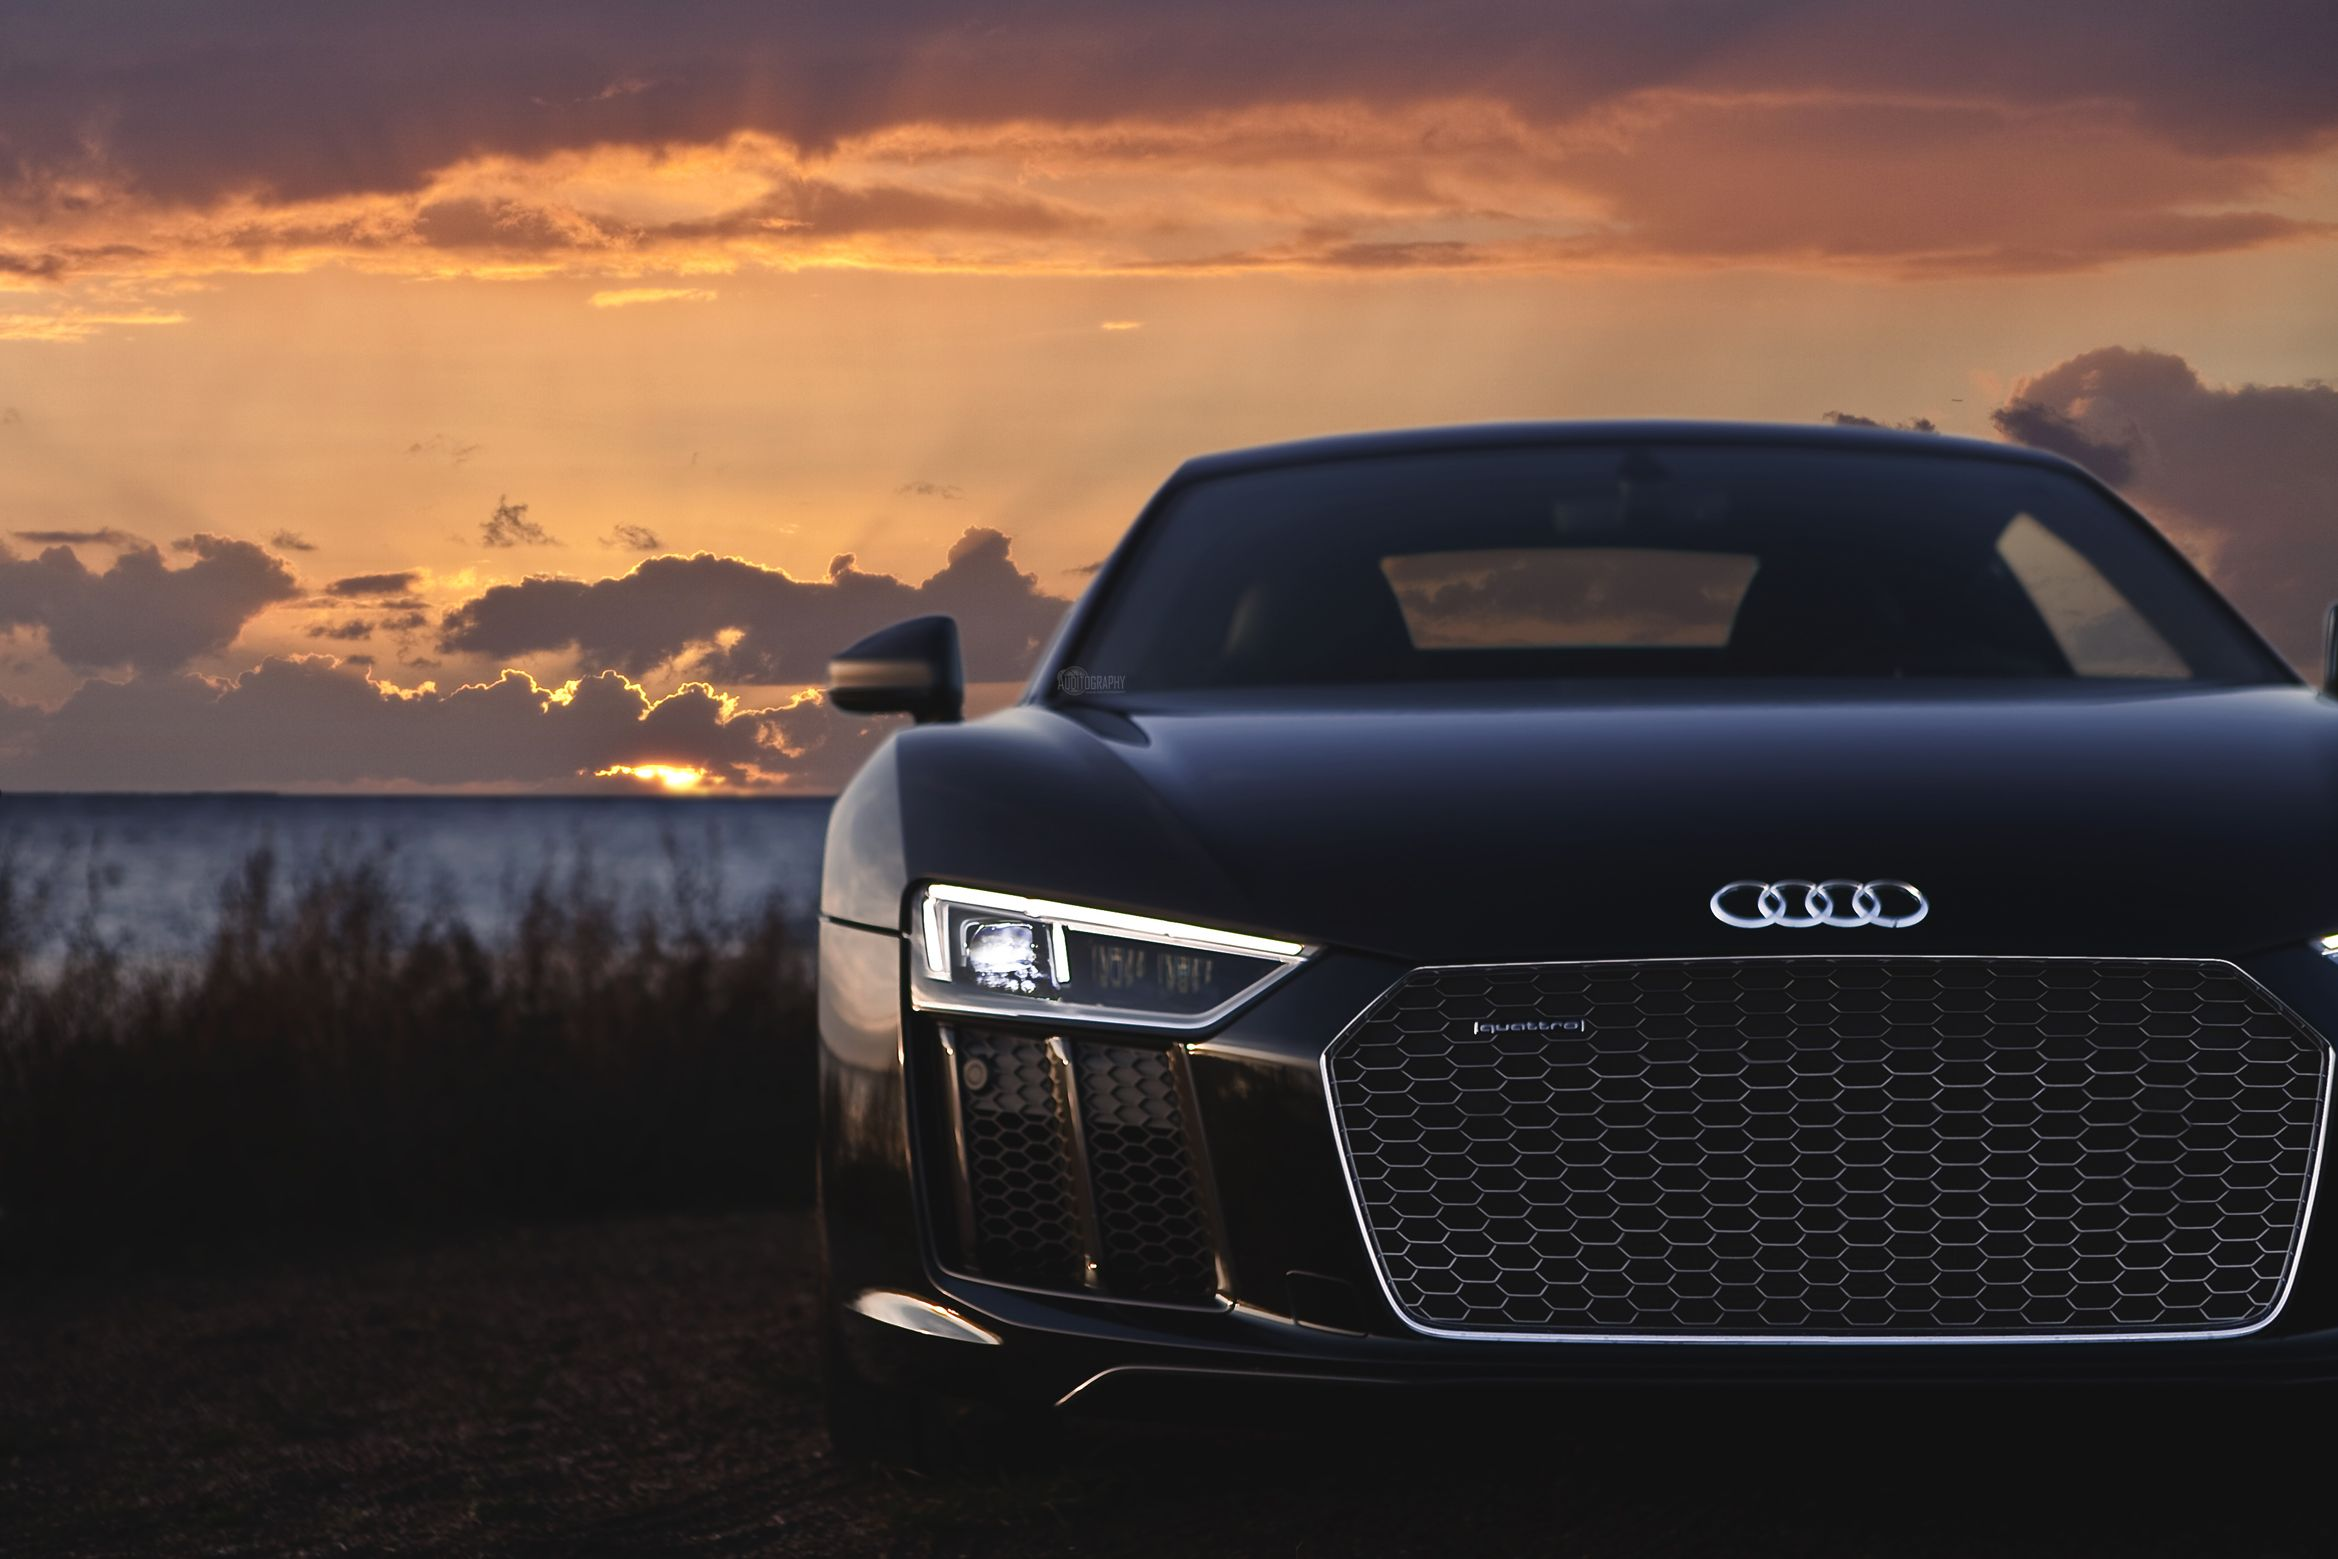 Your Ridiculously Awesome Audi R8 Wallpaper Is Here Audi R8